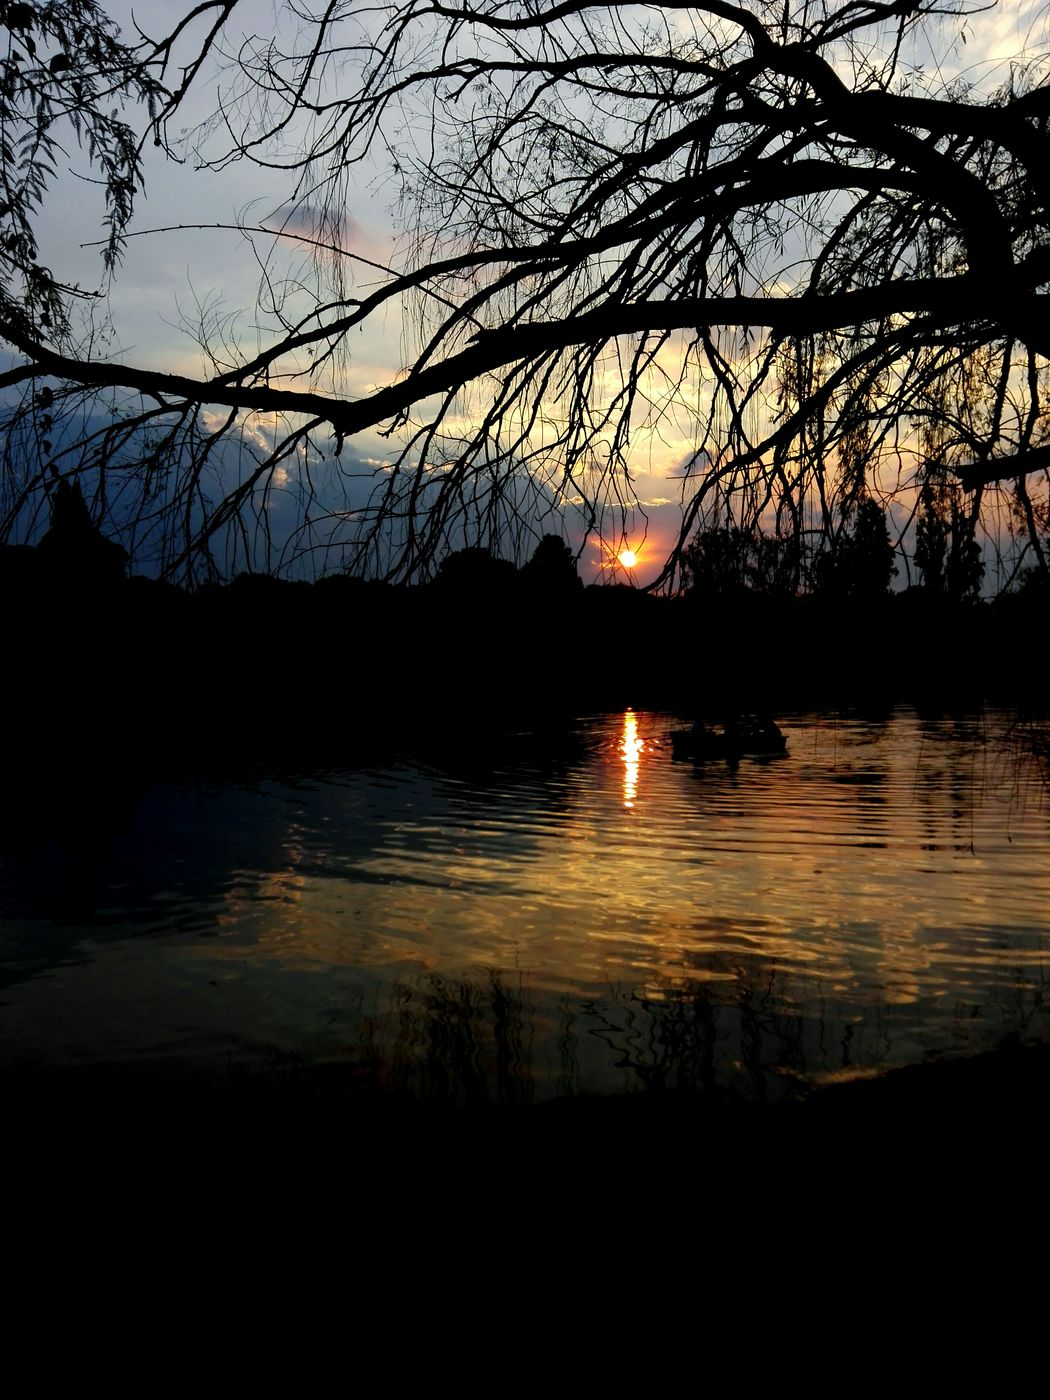 Check This Out another great Sunset Sunset_collection Sunset Silhouettes in Johannesburg Jozi Joburg at Zoo Lake Showcase April Skyporn Nature_collection The Great Outdoors - 2017 EyeEm Awards